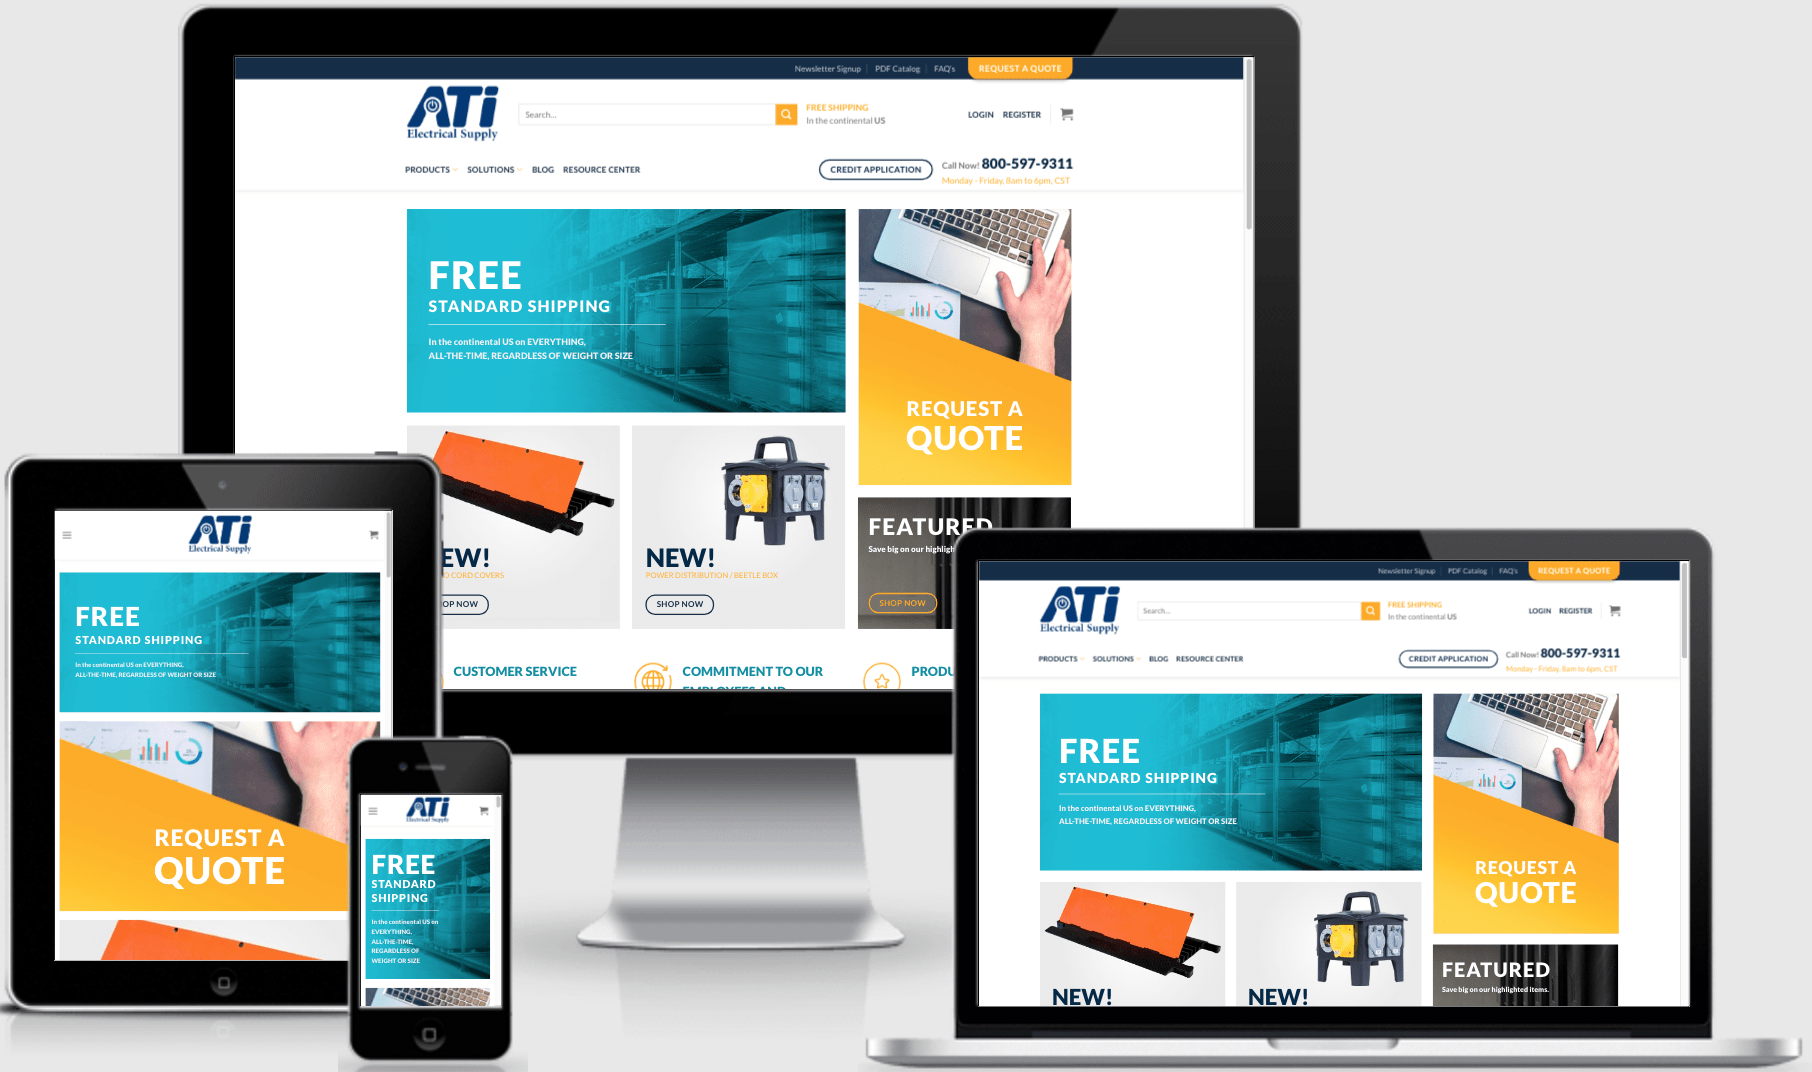 ATI Electrical Responsive Website Design